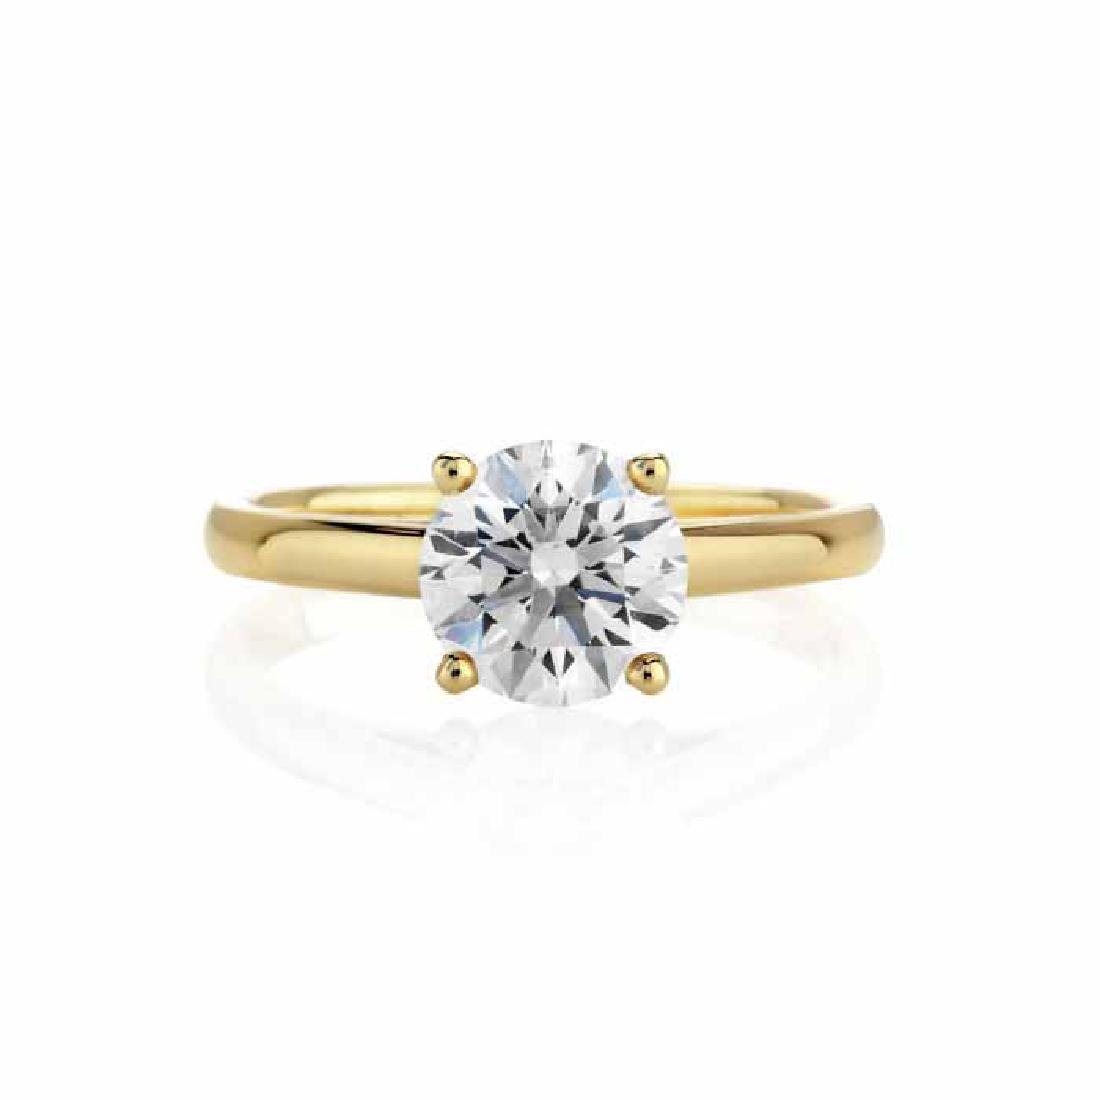 CERTIFIED 0.9 CTW D/VS1 ROUND DIAMOND SOLITAIRE RING IN